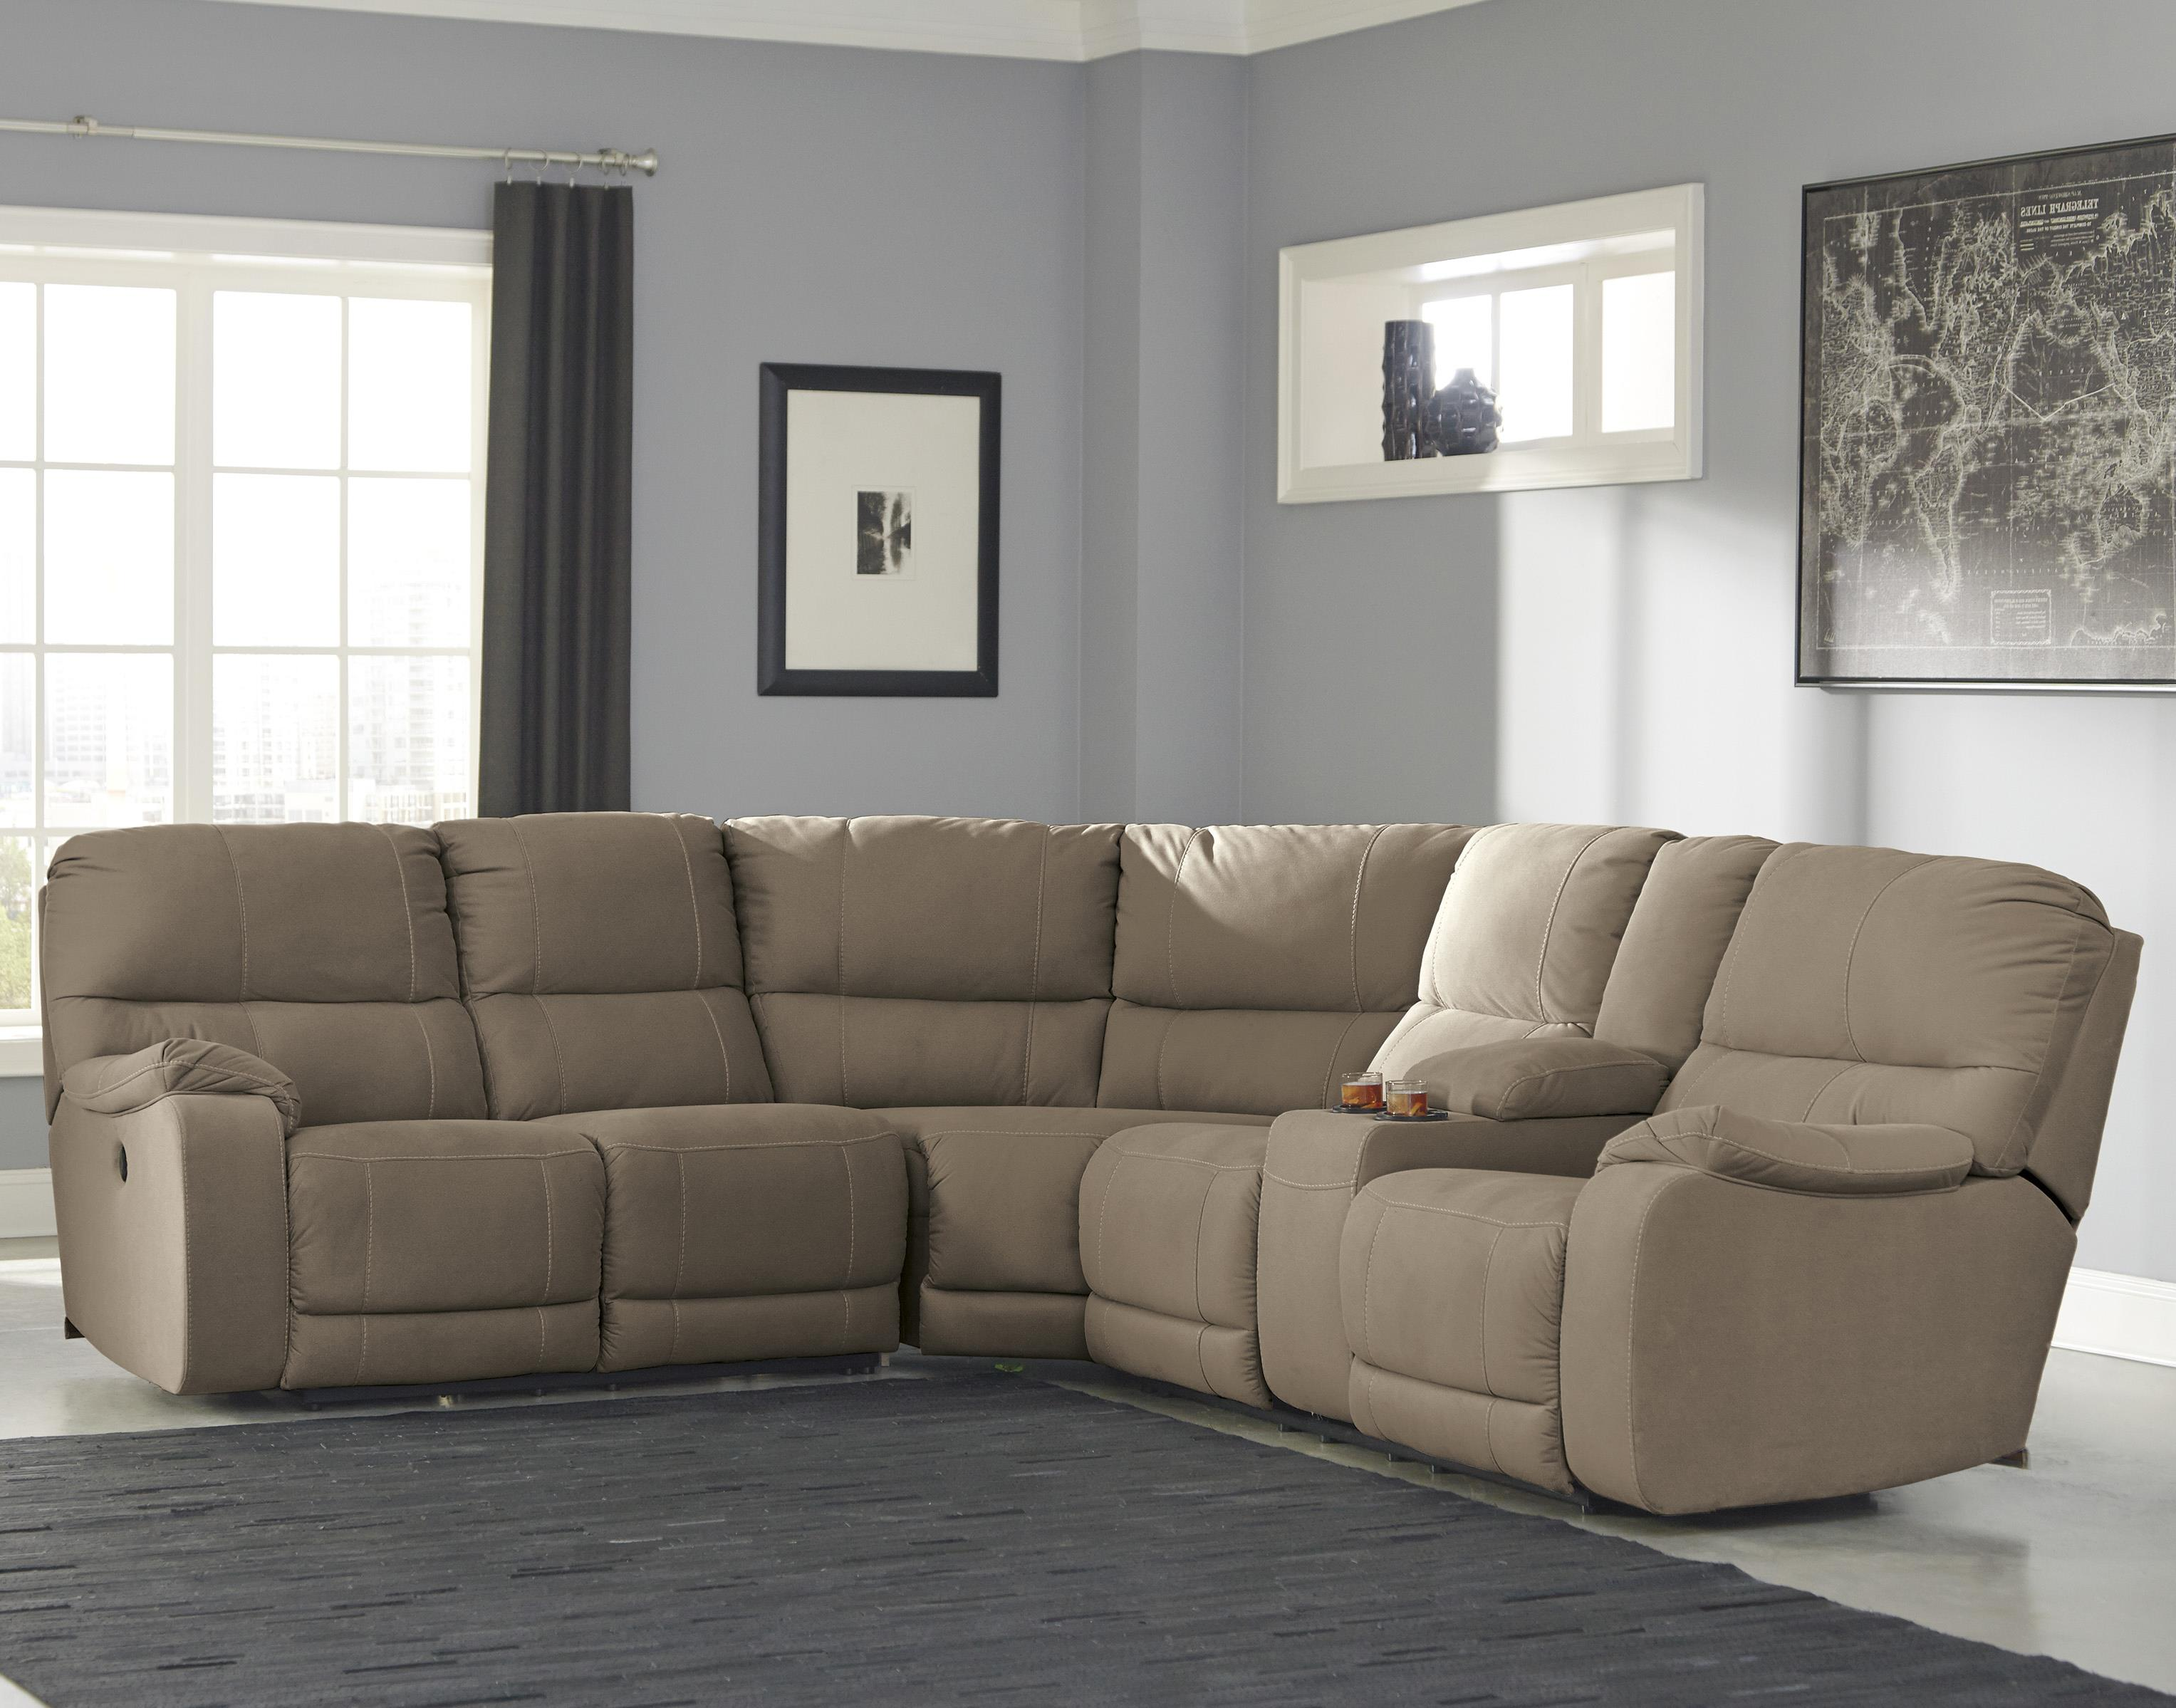 Benchcraft Bohannon Power Reclining Sectional with Console - Item Number: 5740363+77+90